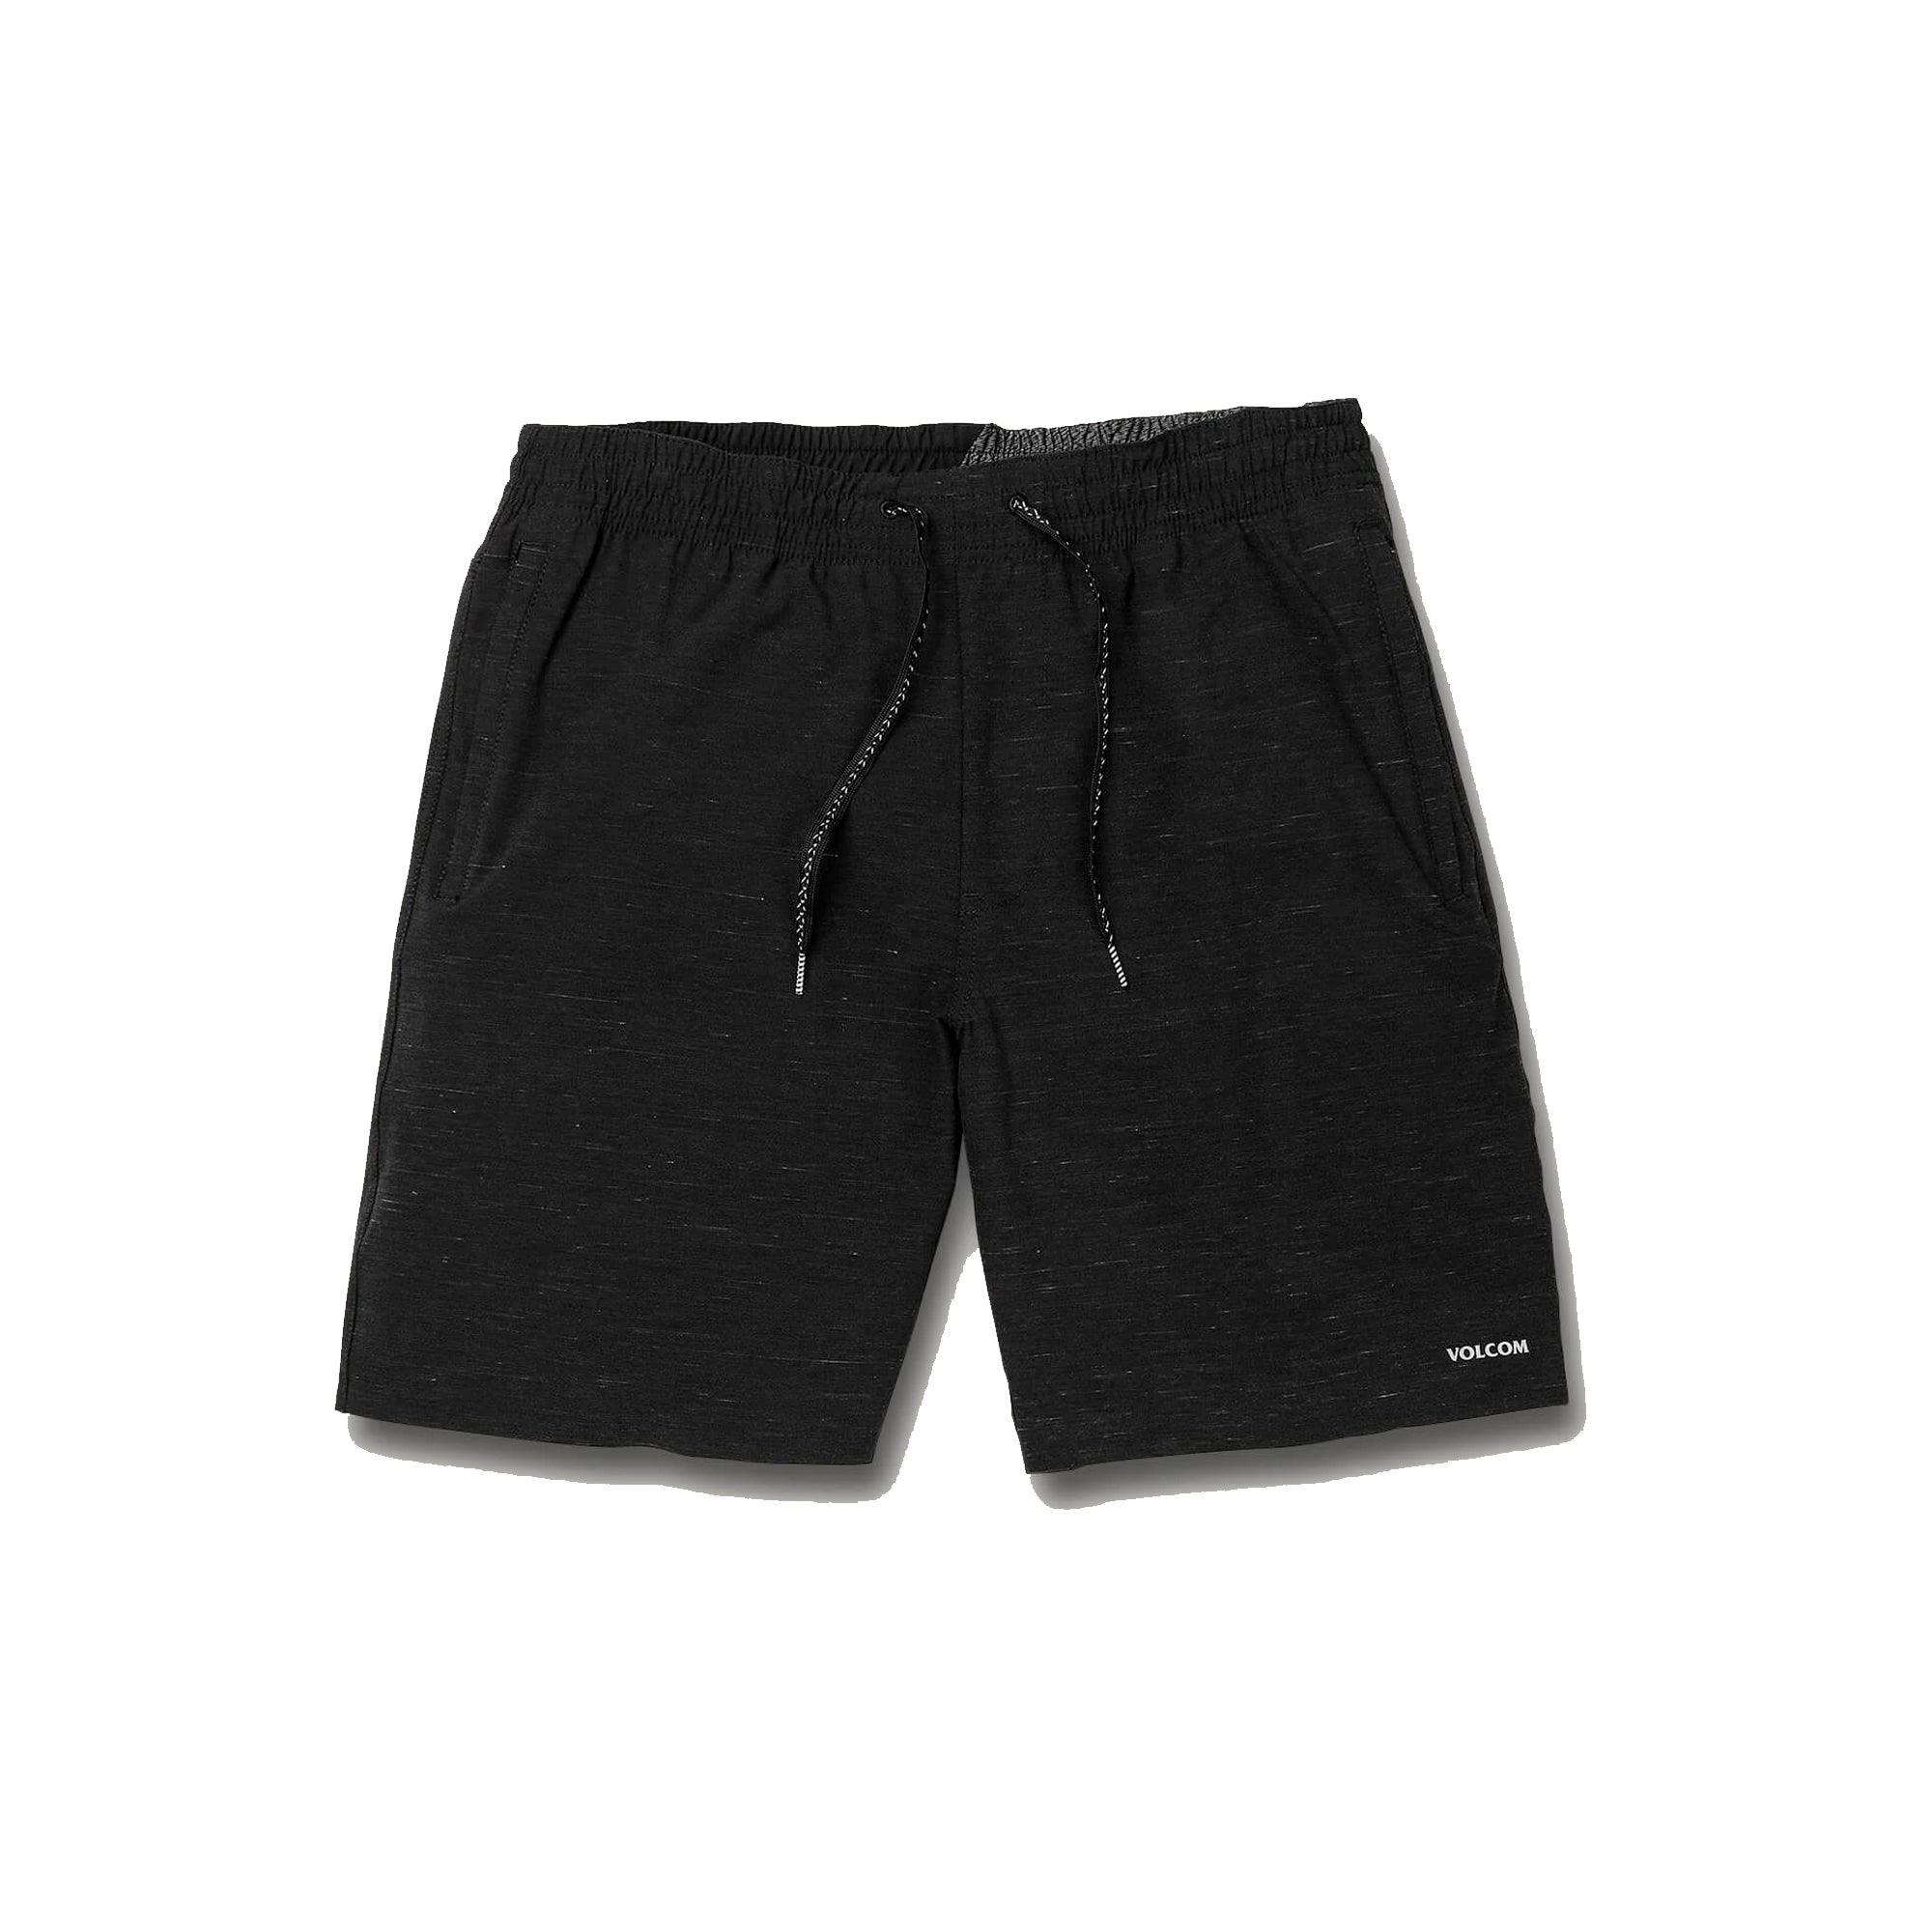 "Volcom Packasack Lite 19"" Men's Hybrid Walkshorts"